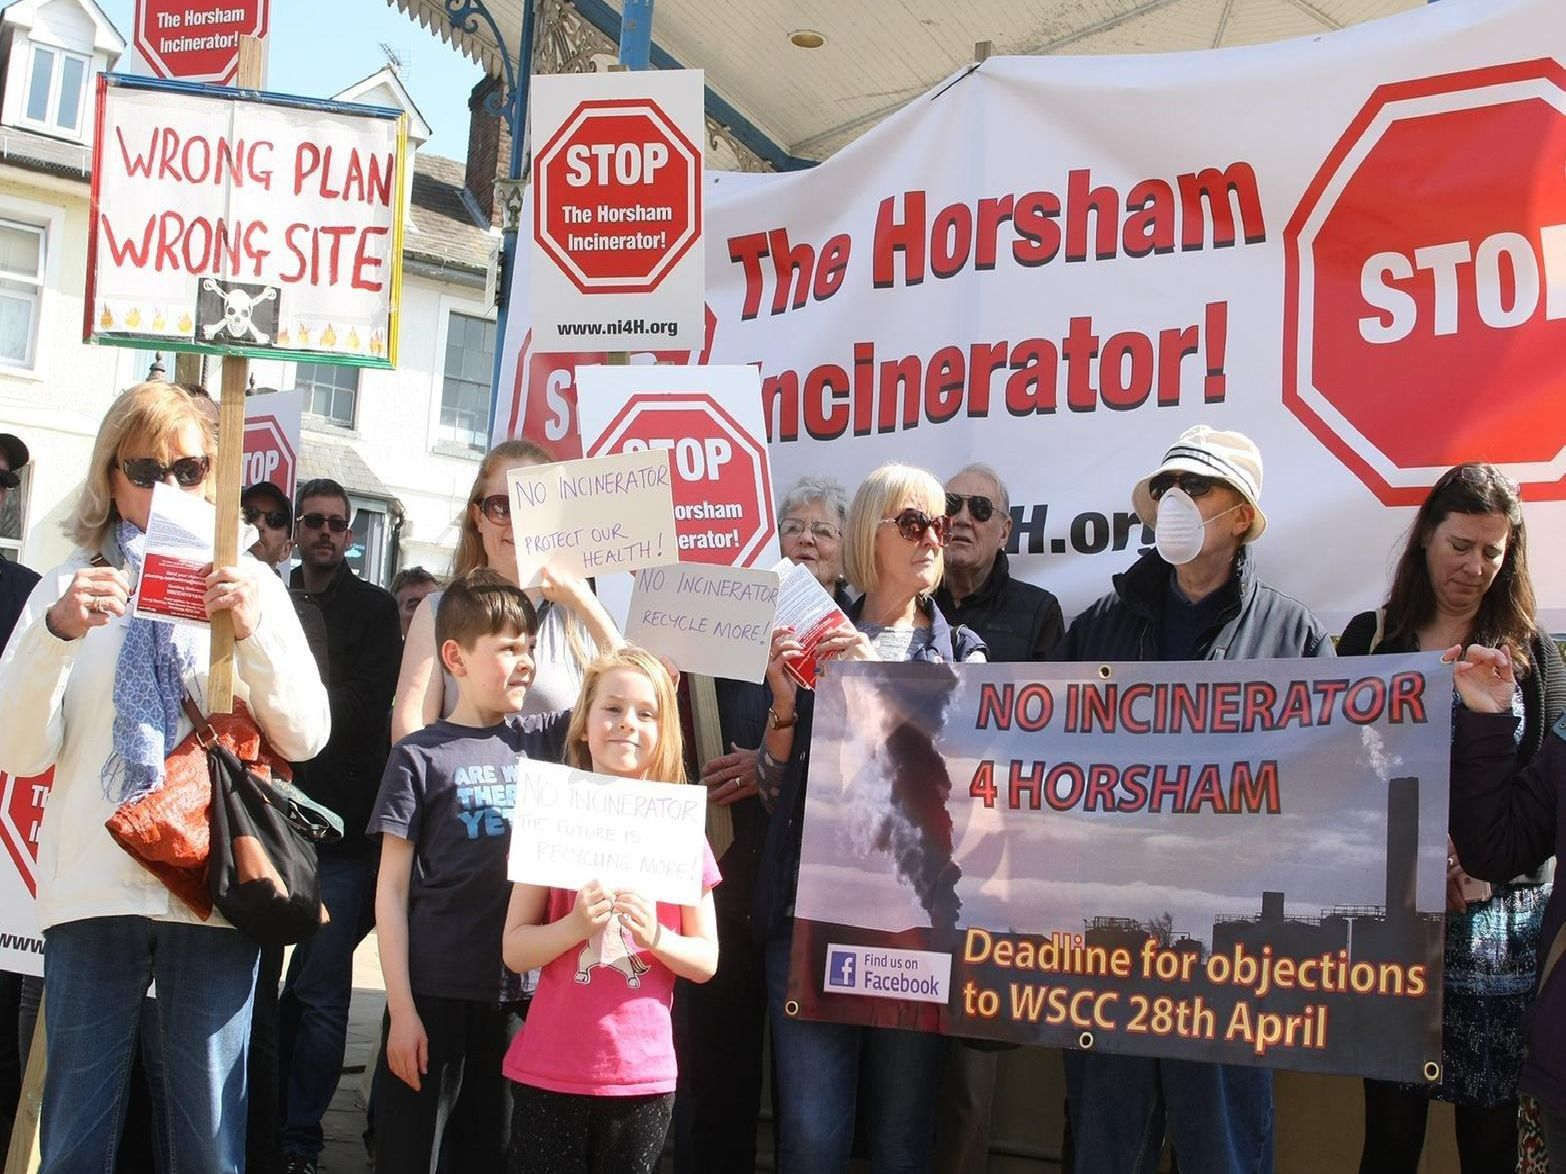 Campaigners battled plans to build an incinerator in Horsham